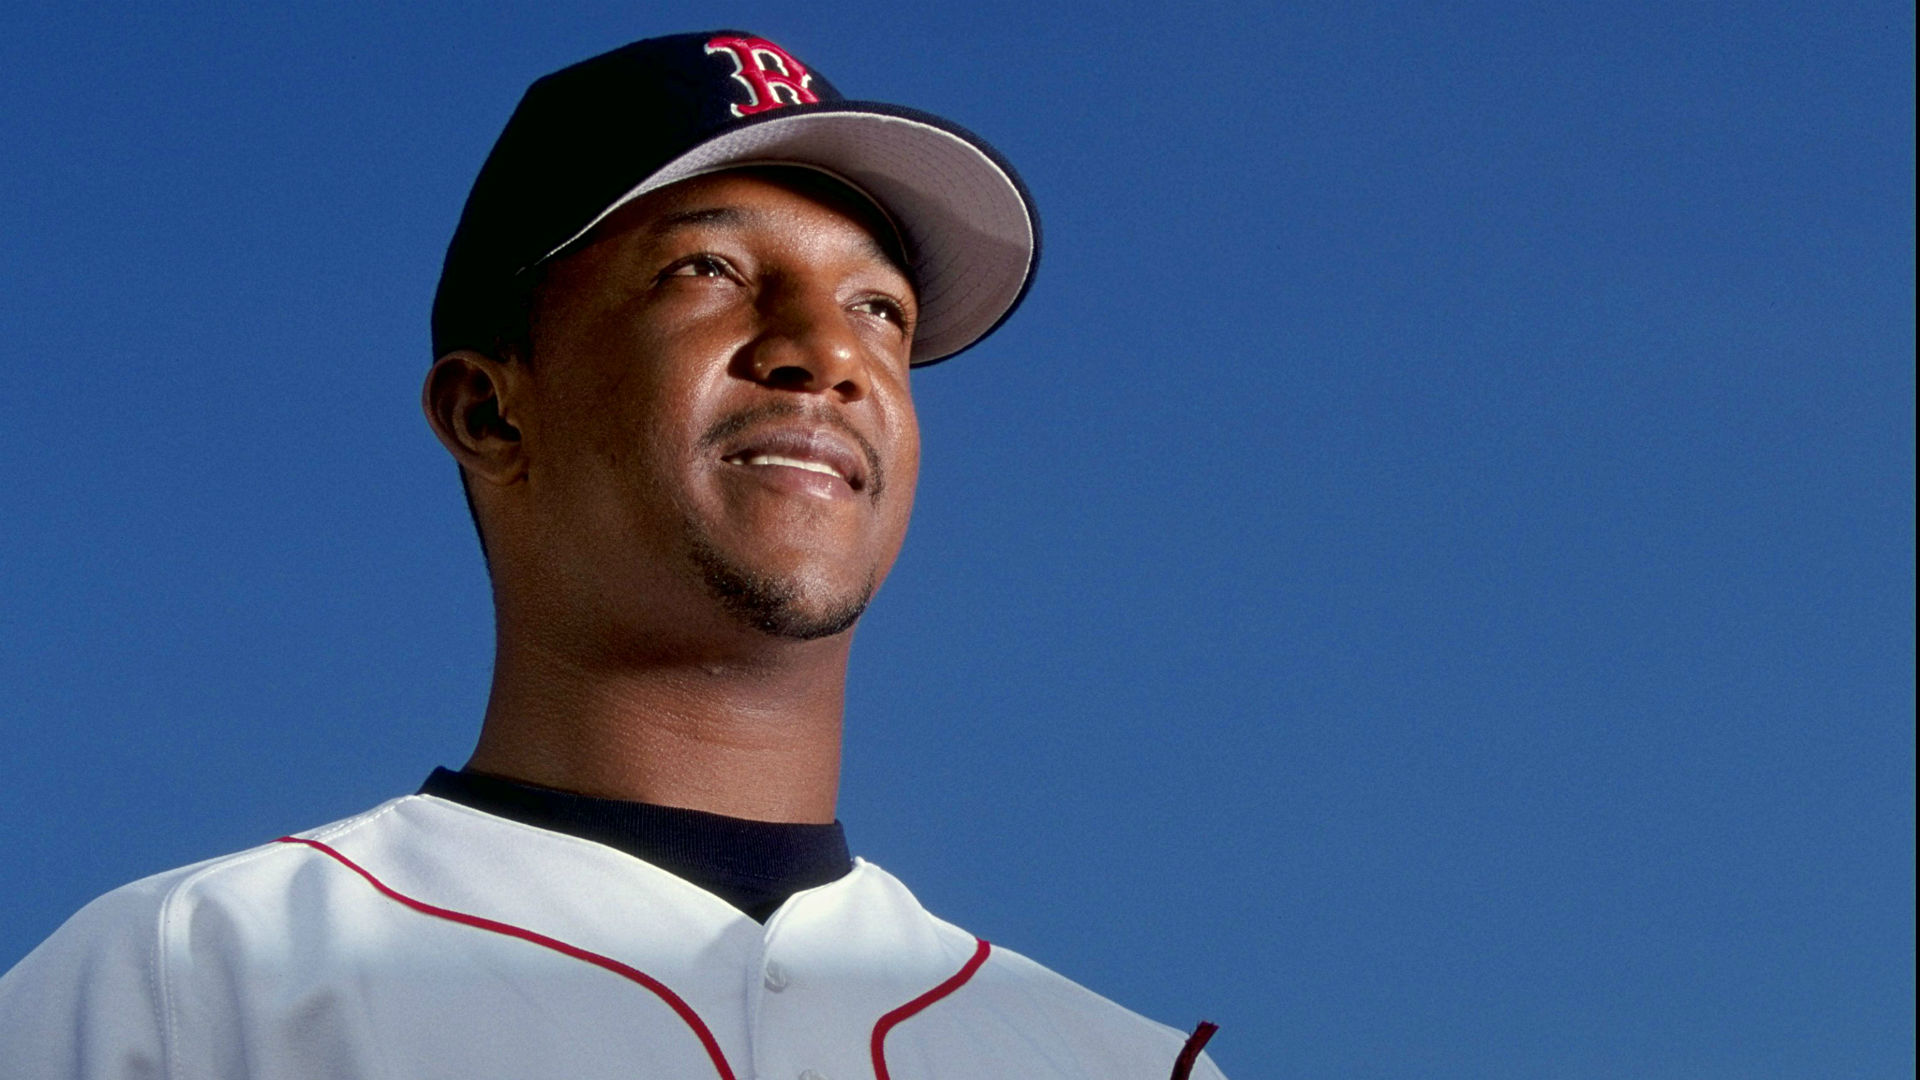 Pedro Martinez: Greatest Red Sox Pitcher Of My Lifetime